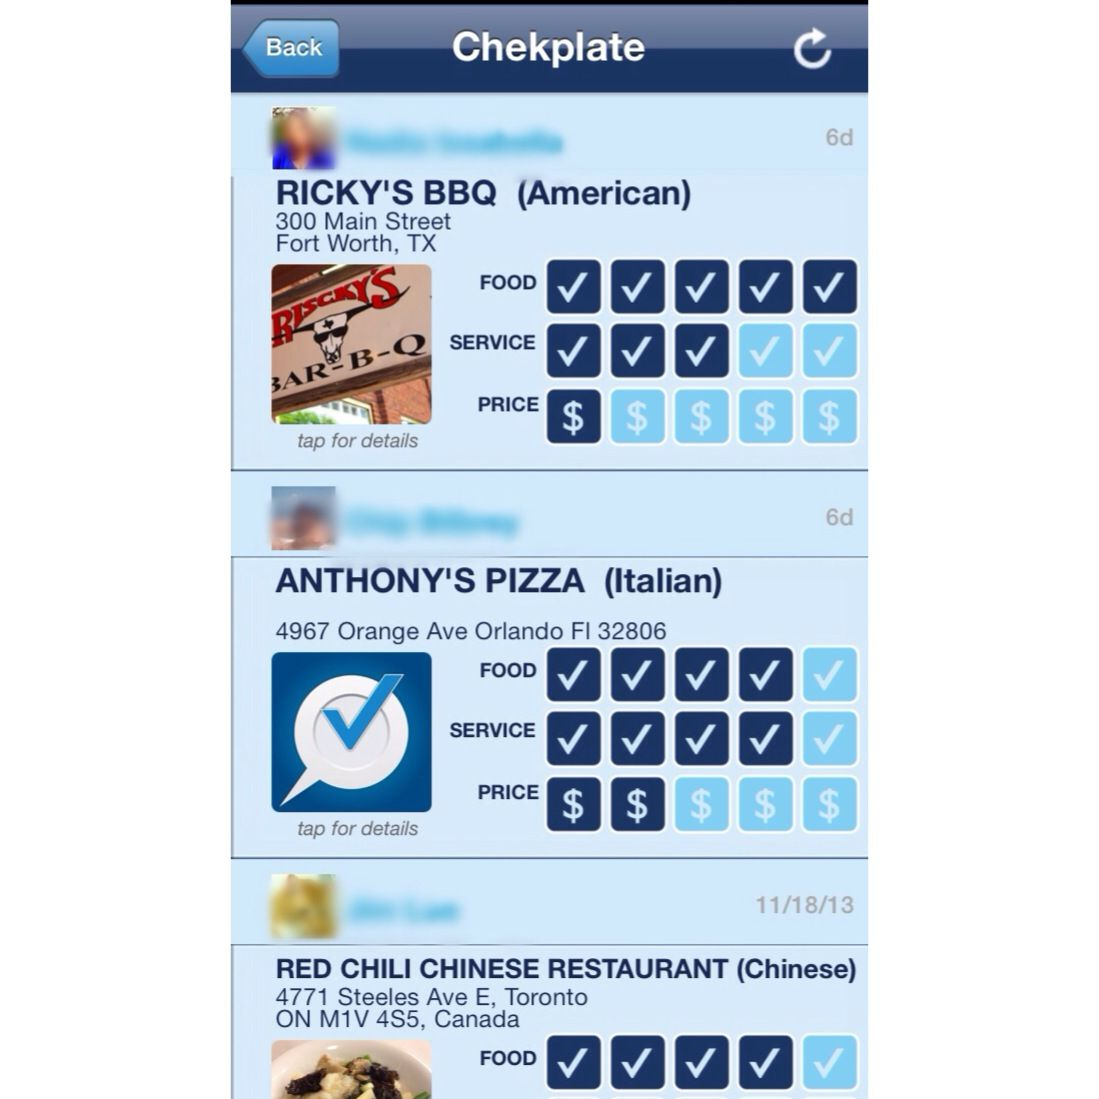 Chekplate Users Share Reviews From All Over The World